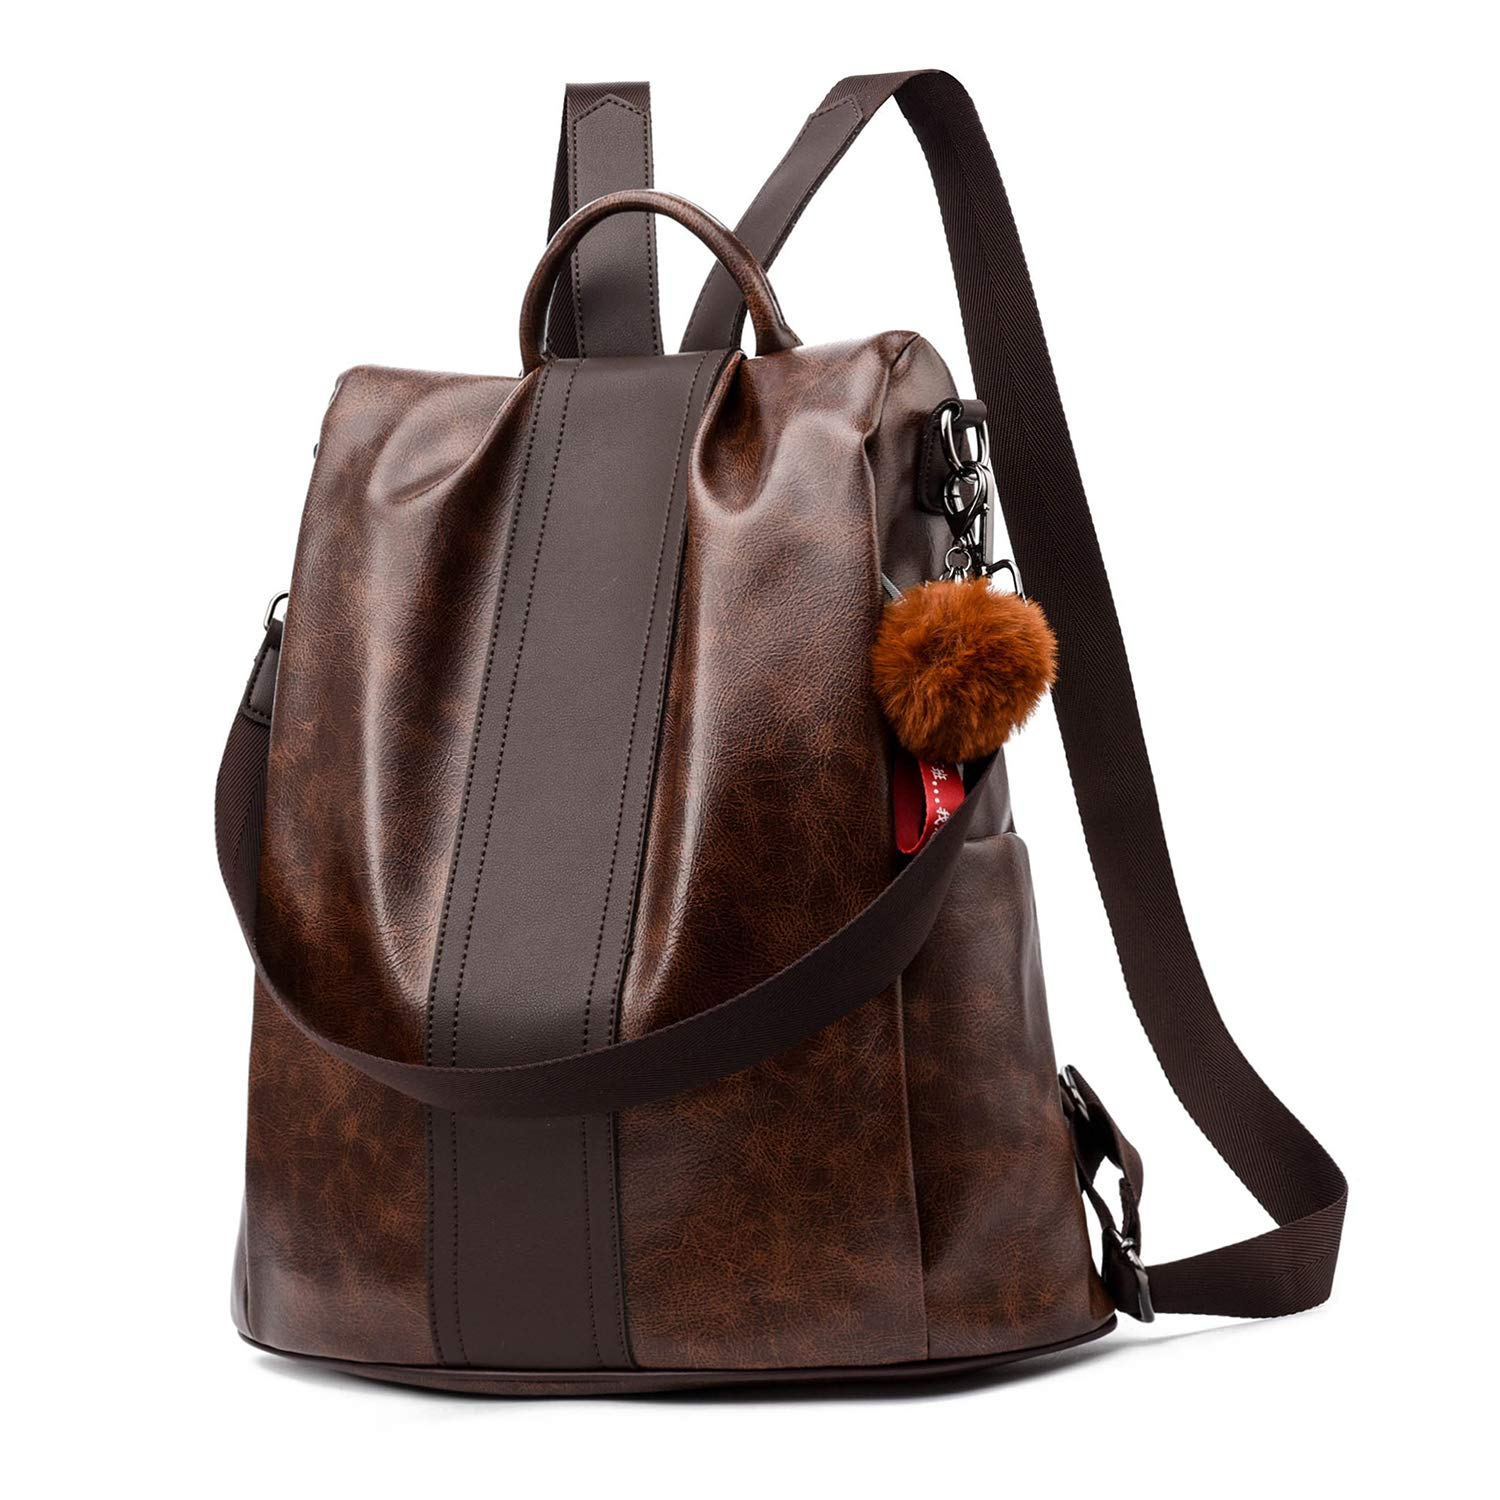 Women Backpack Purse PU Leather Anti-theft Backpack Casual Satchel School Shoulder Bag for Girls (Brown Large)